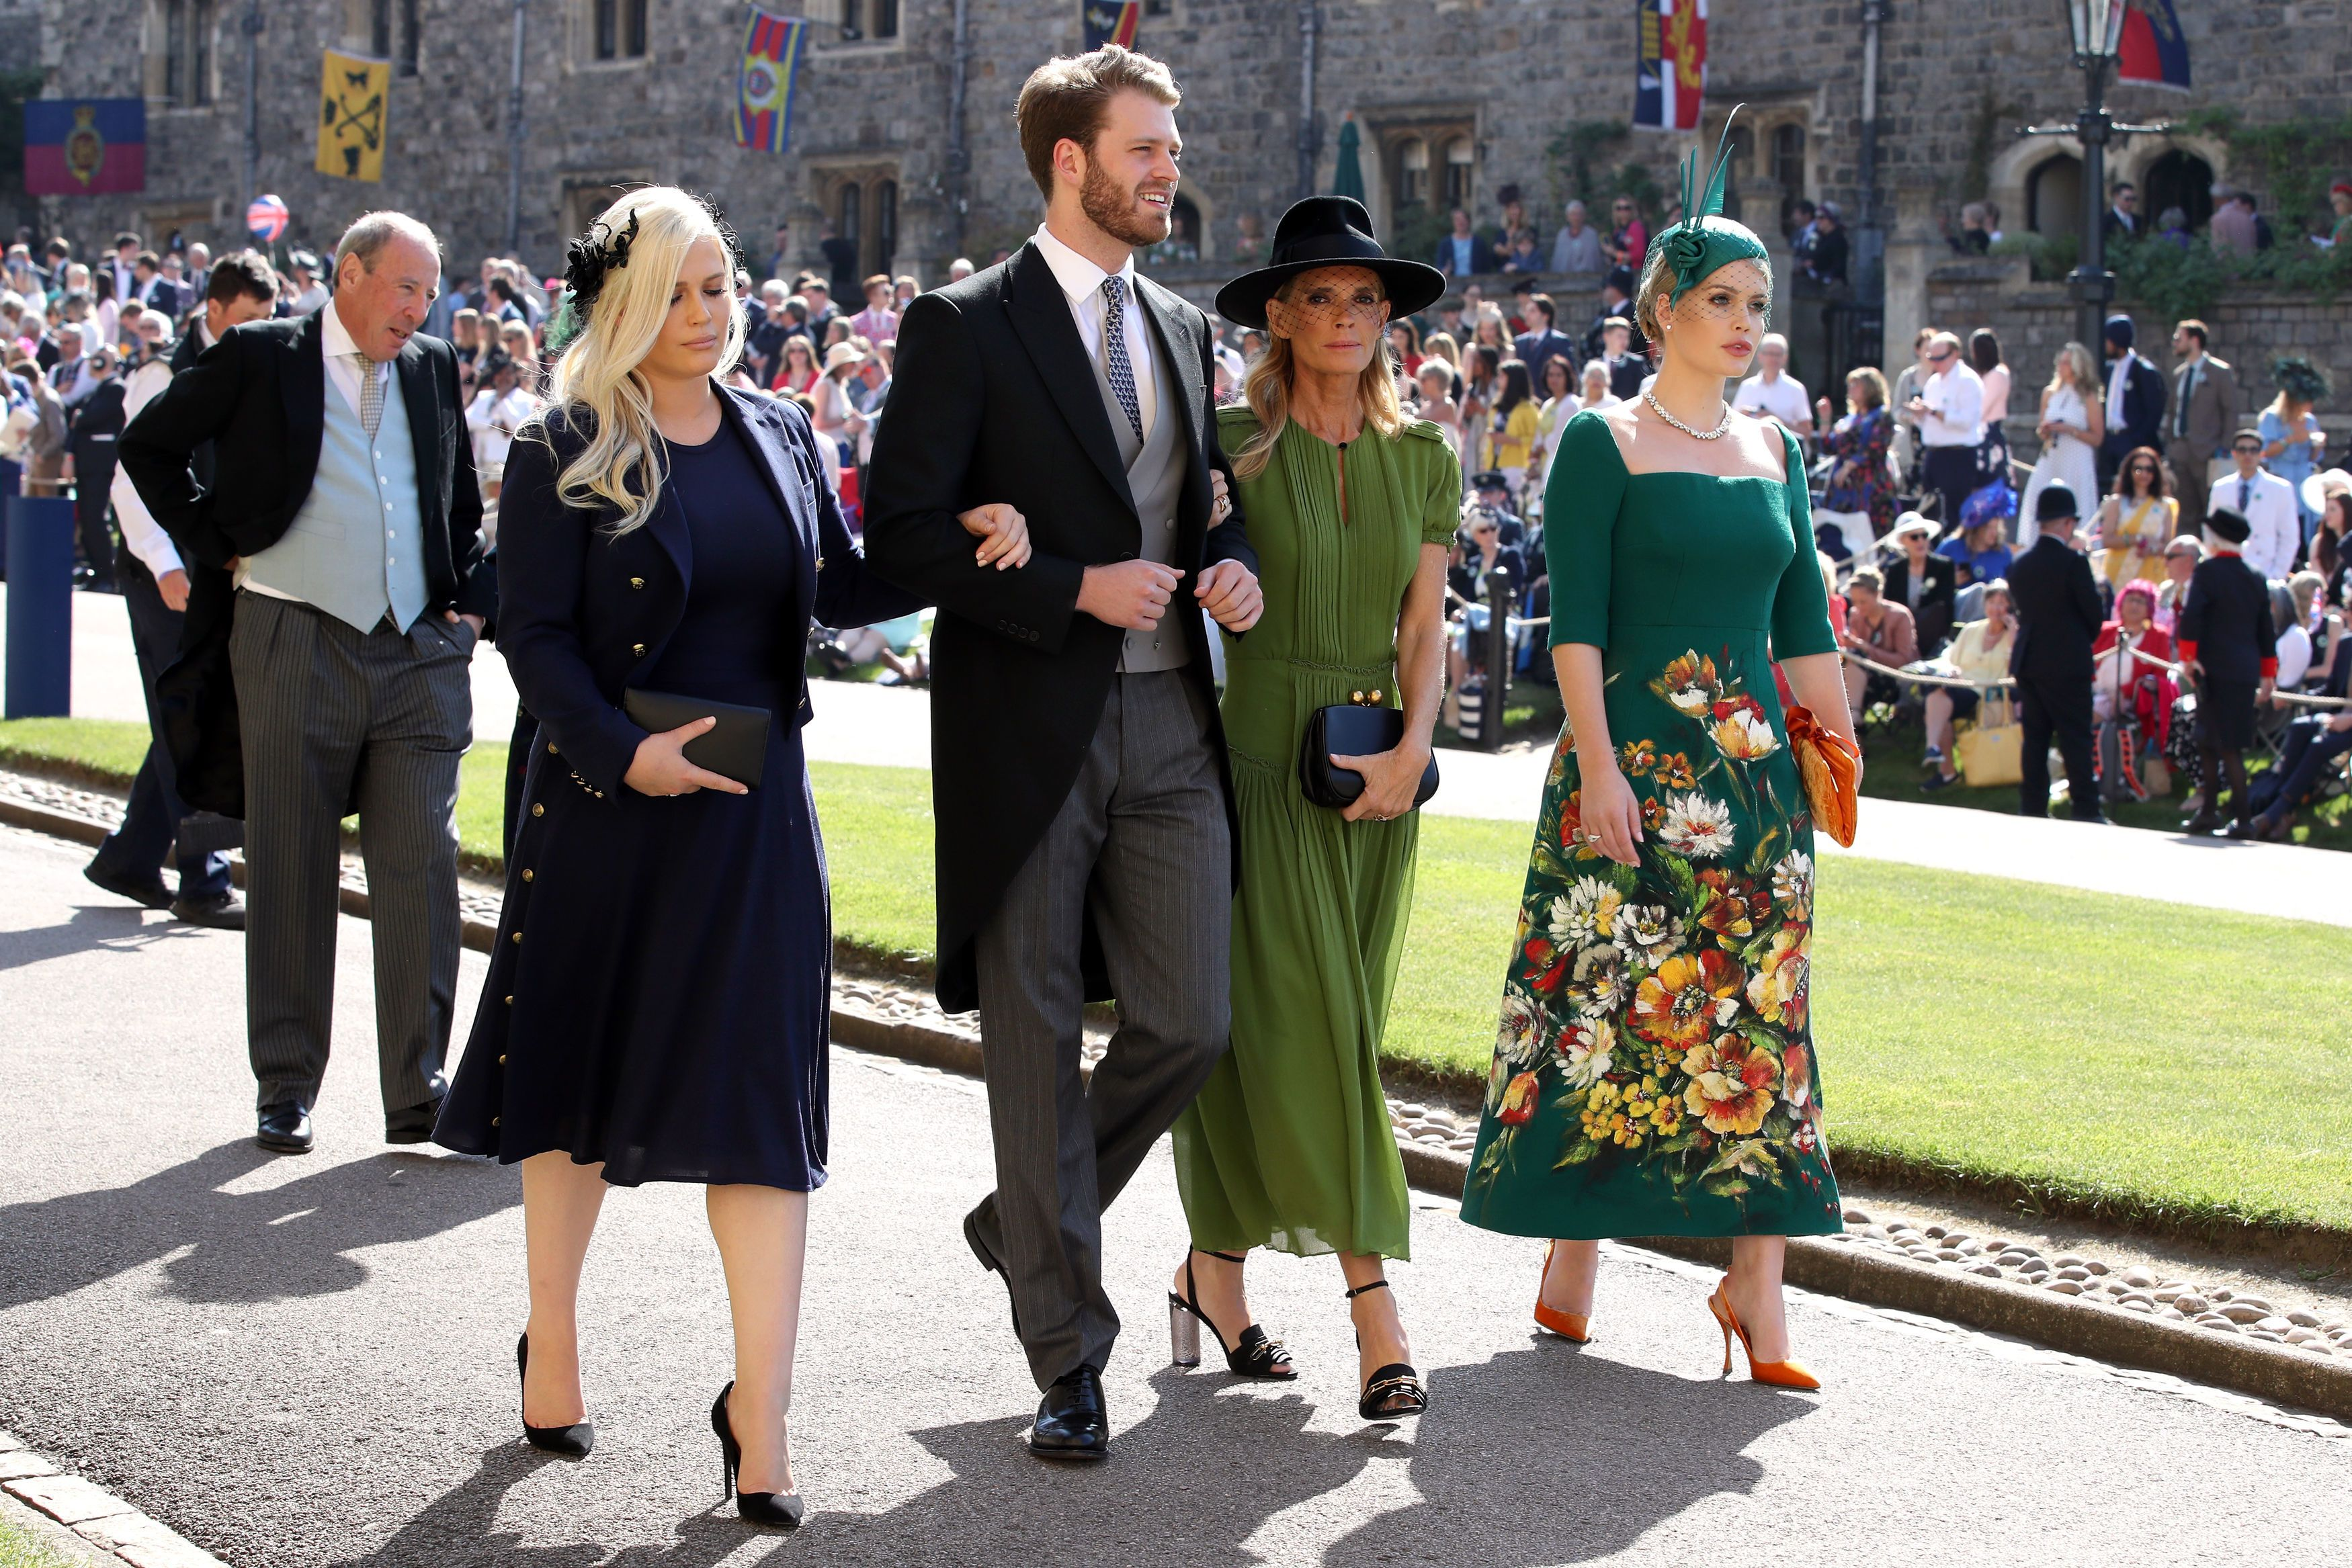 Eliza and Louis Spencer, Victoria Aitken, and Kitty Spencer at Prince Harry and Meghan Markle's wedding ceremony at Windsor Castle on May 19, 2018, in England | Photo: Chris Radburn - WPA Pool/Getty Images